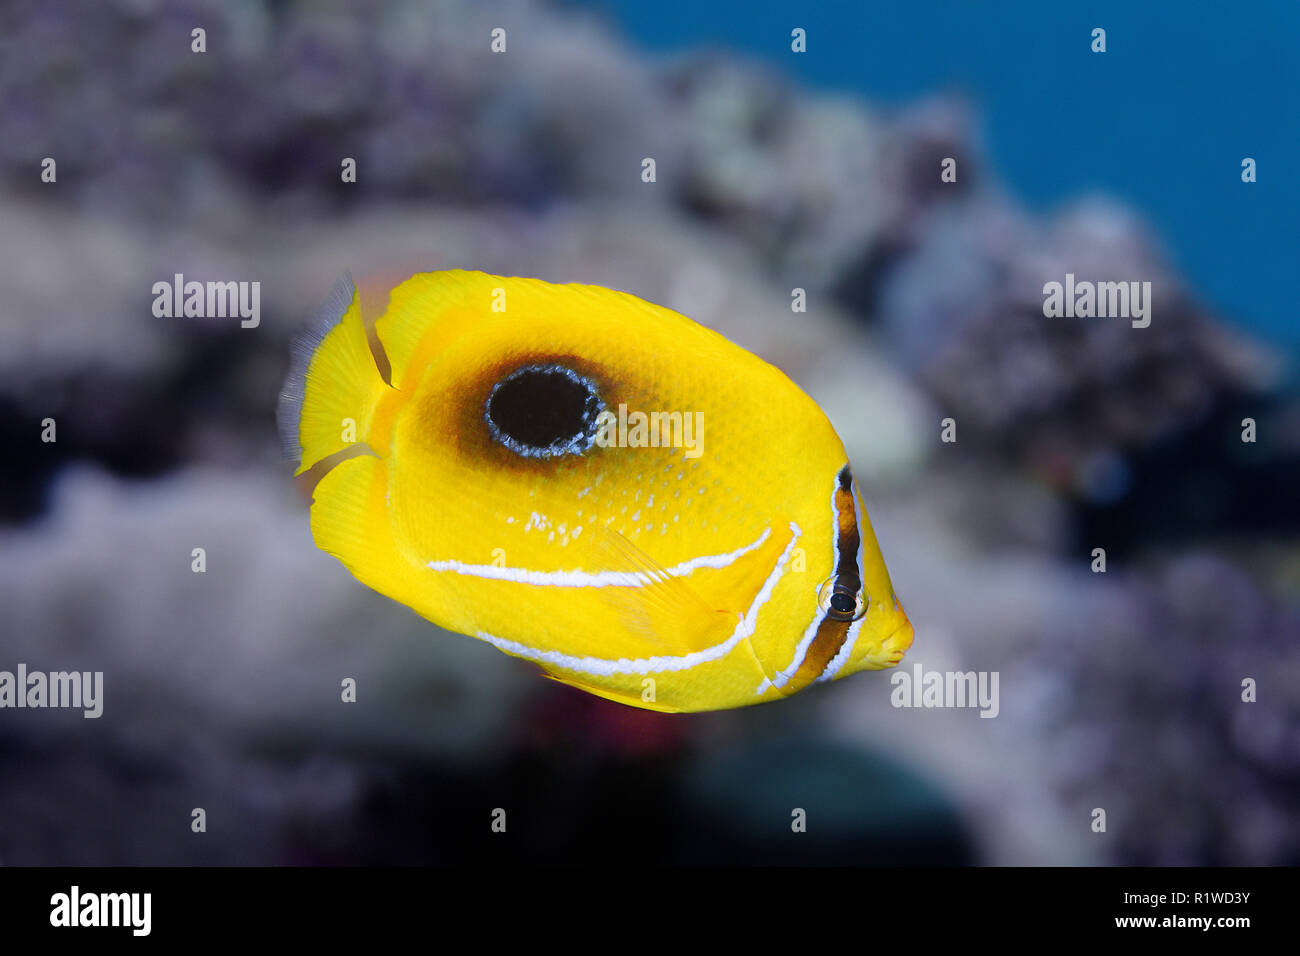 Mirror butterflyfish (Chaetodon speculum), swims in the claw reef, Indonesia, Sulawesi, Selayar, Flores Sea, Pacific, Indonesia - Stock Image